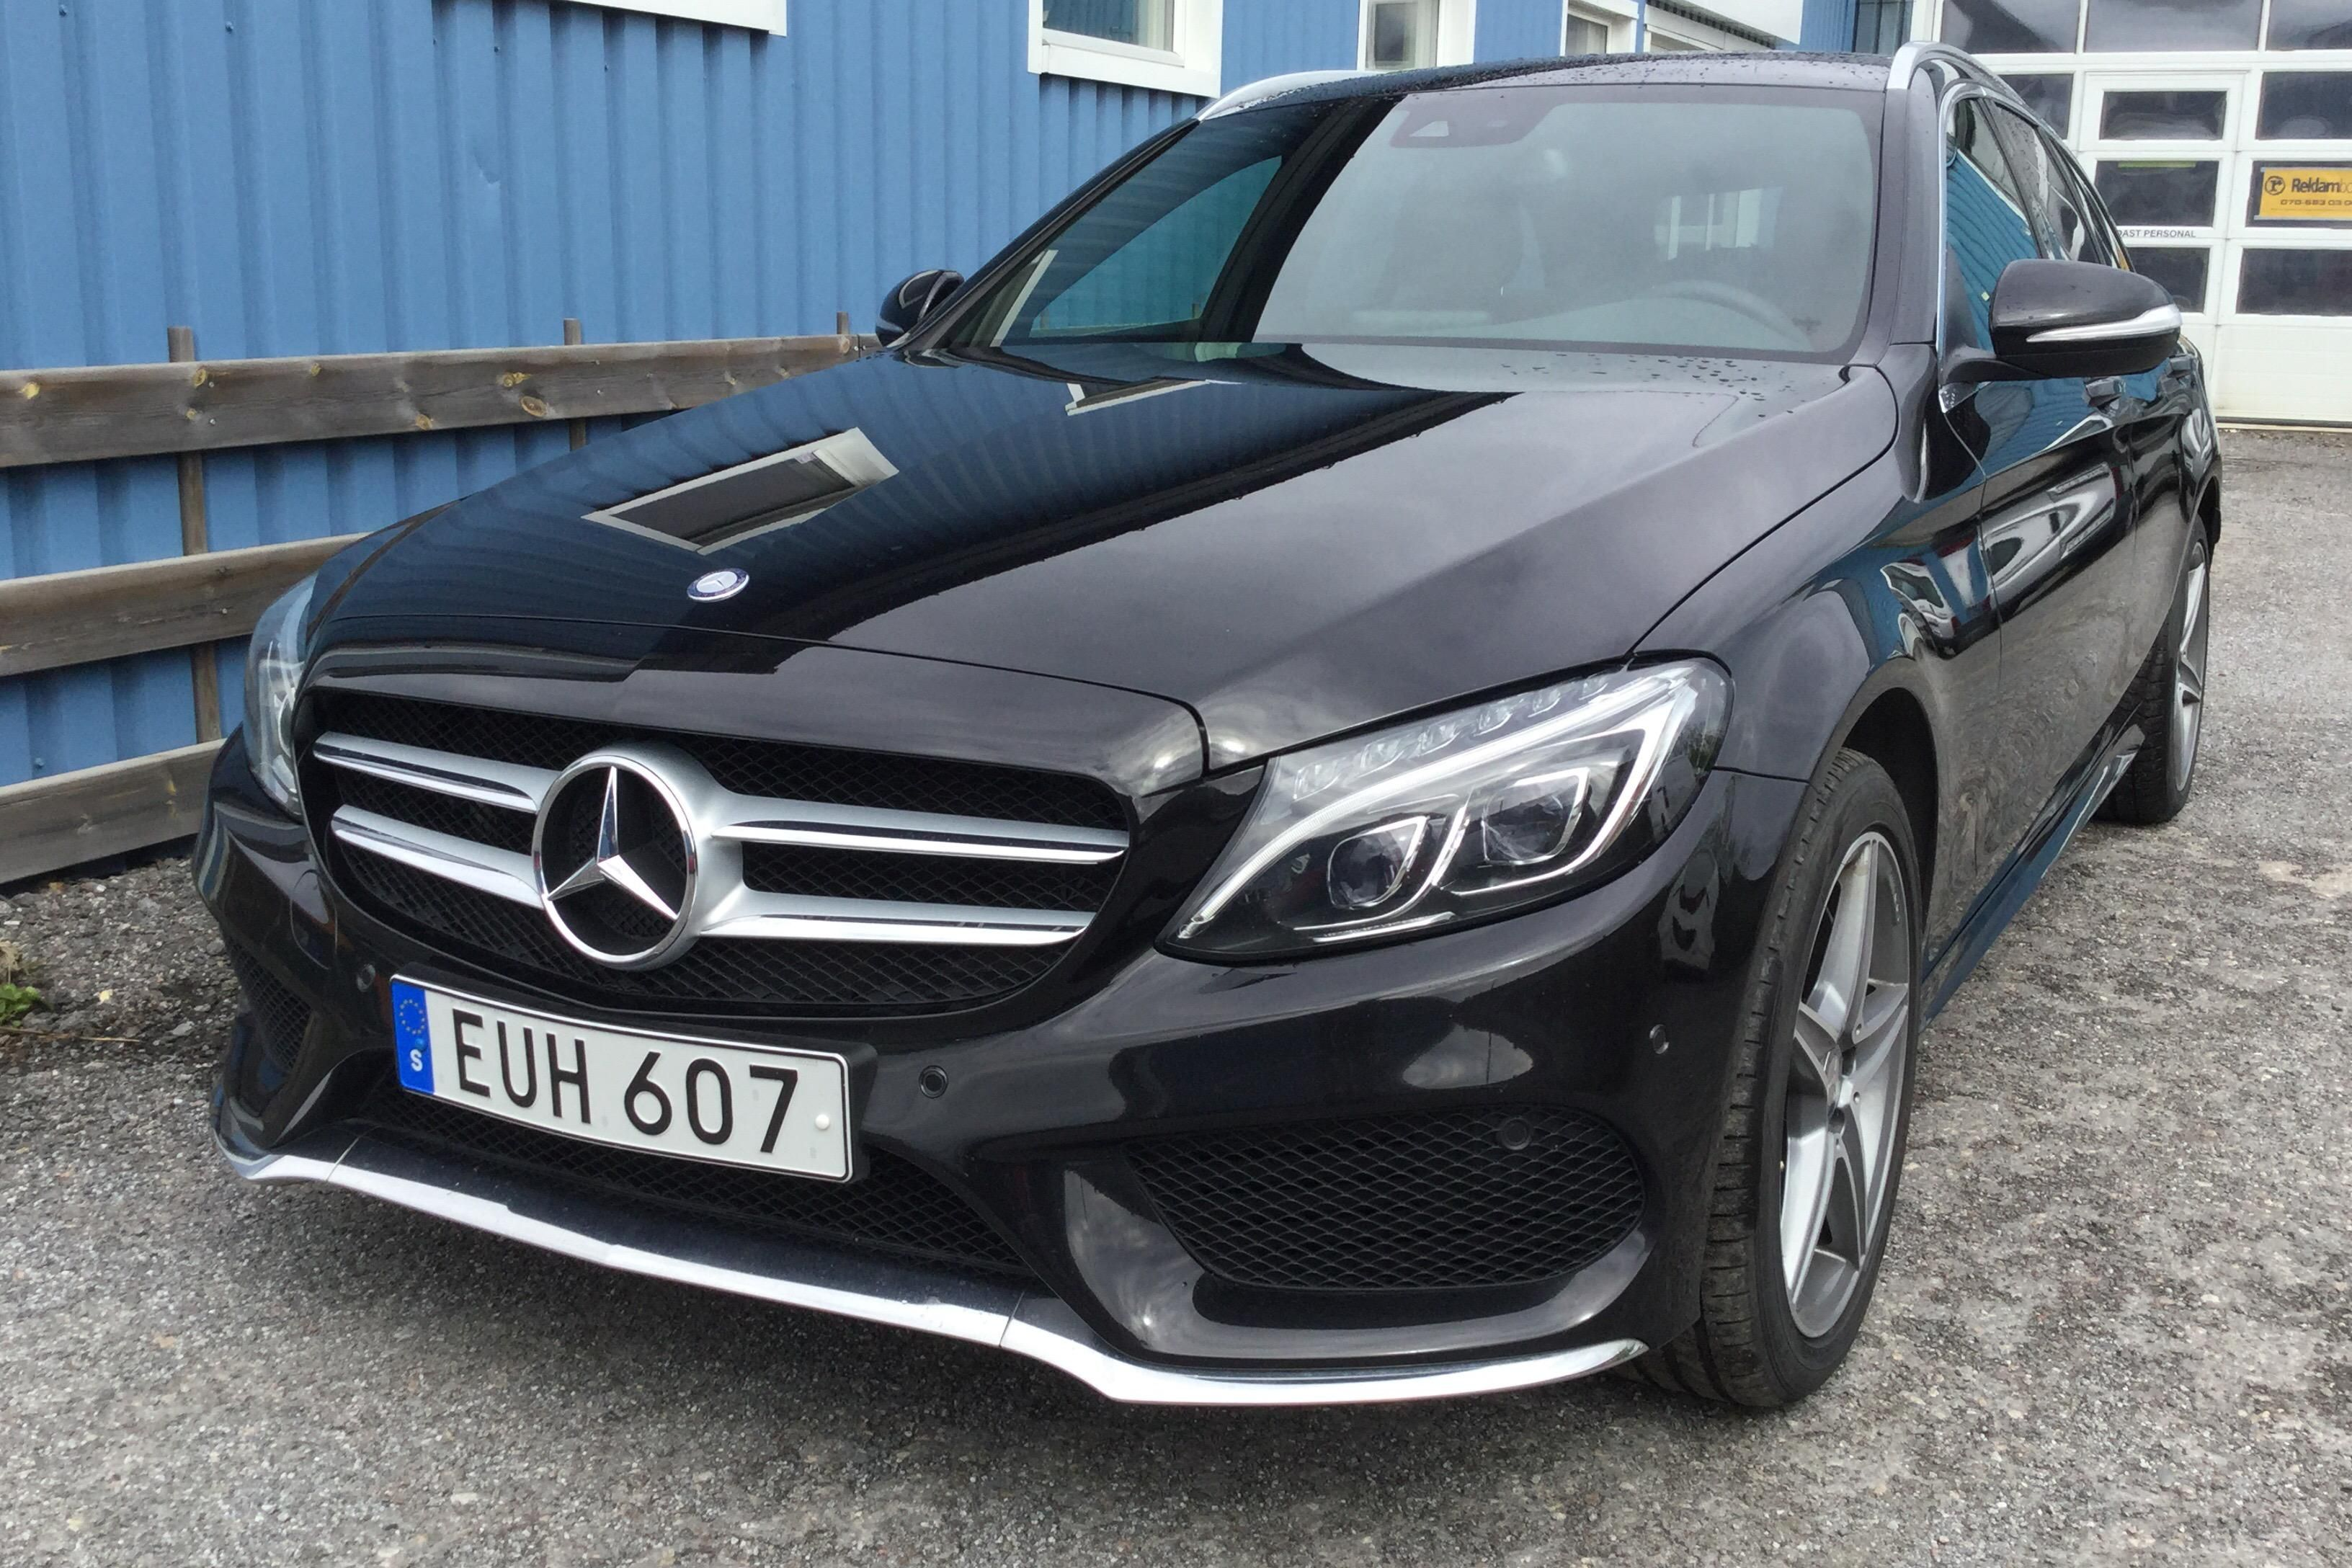 Mercedes C 250 BlueTEC 4Matic Kombi S205 (204hk)